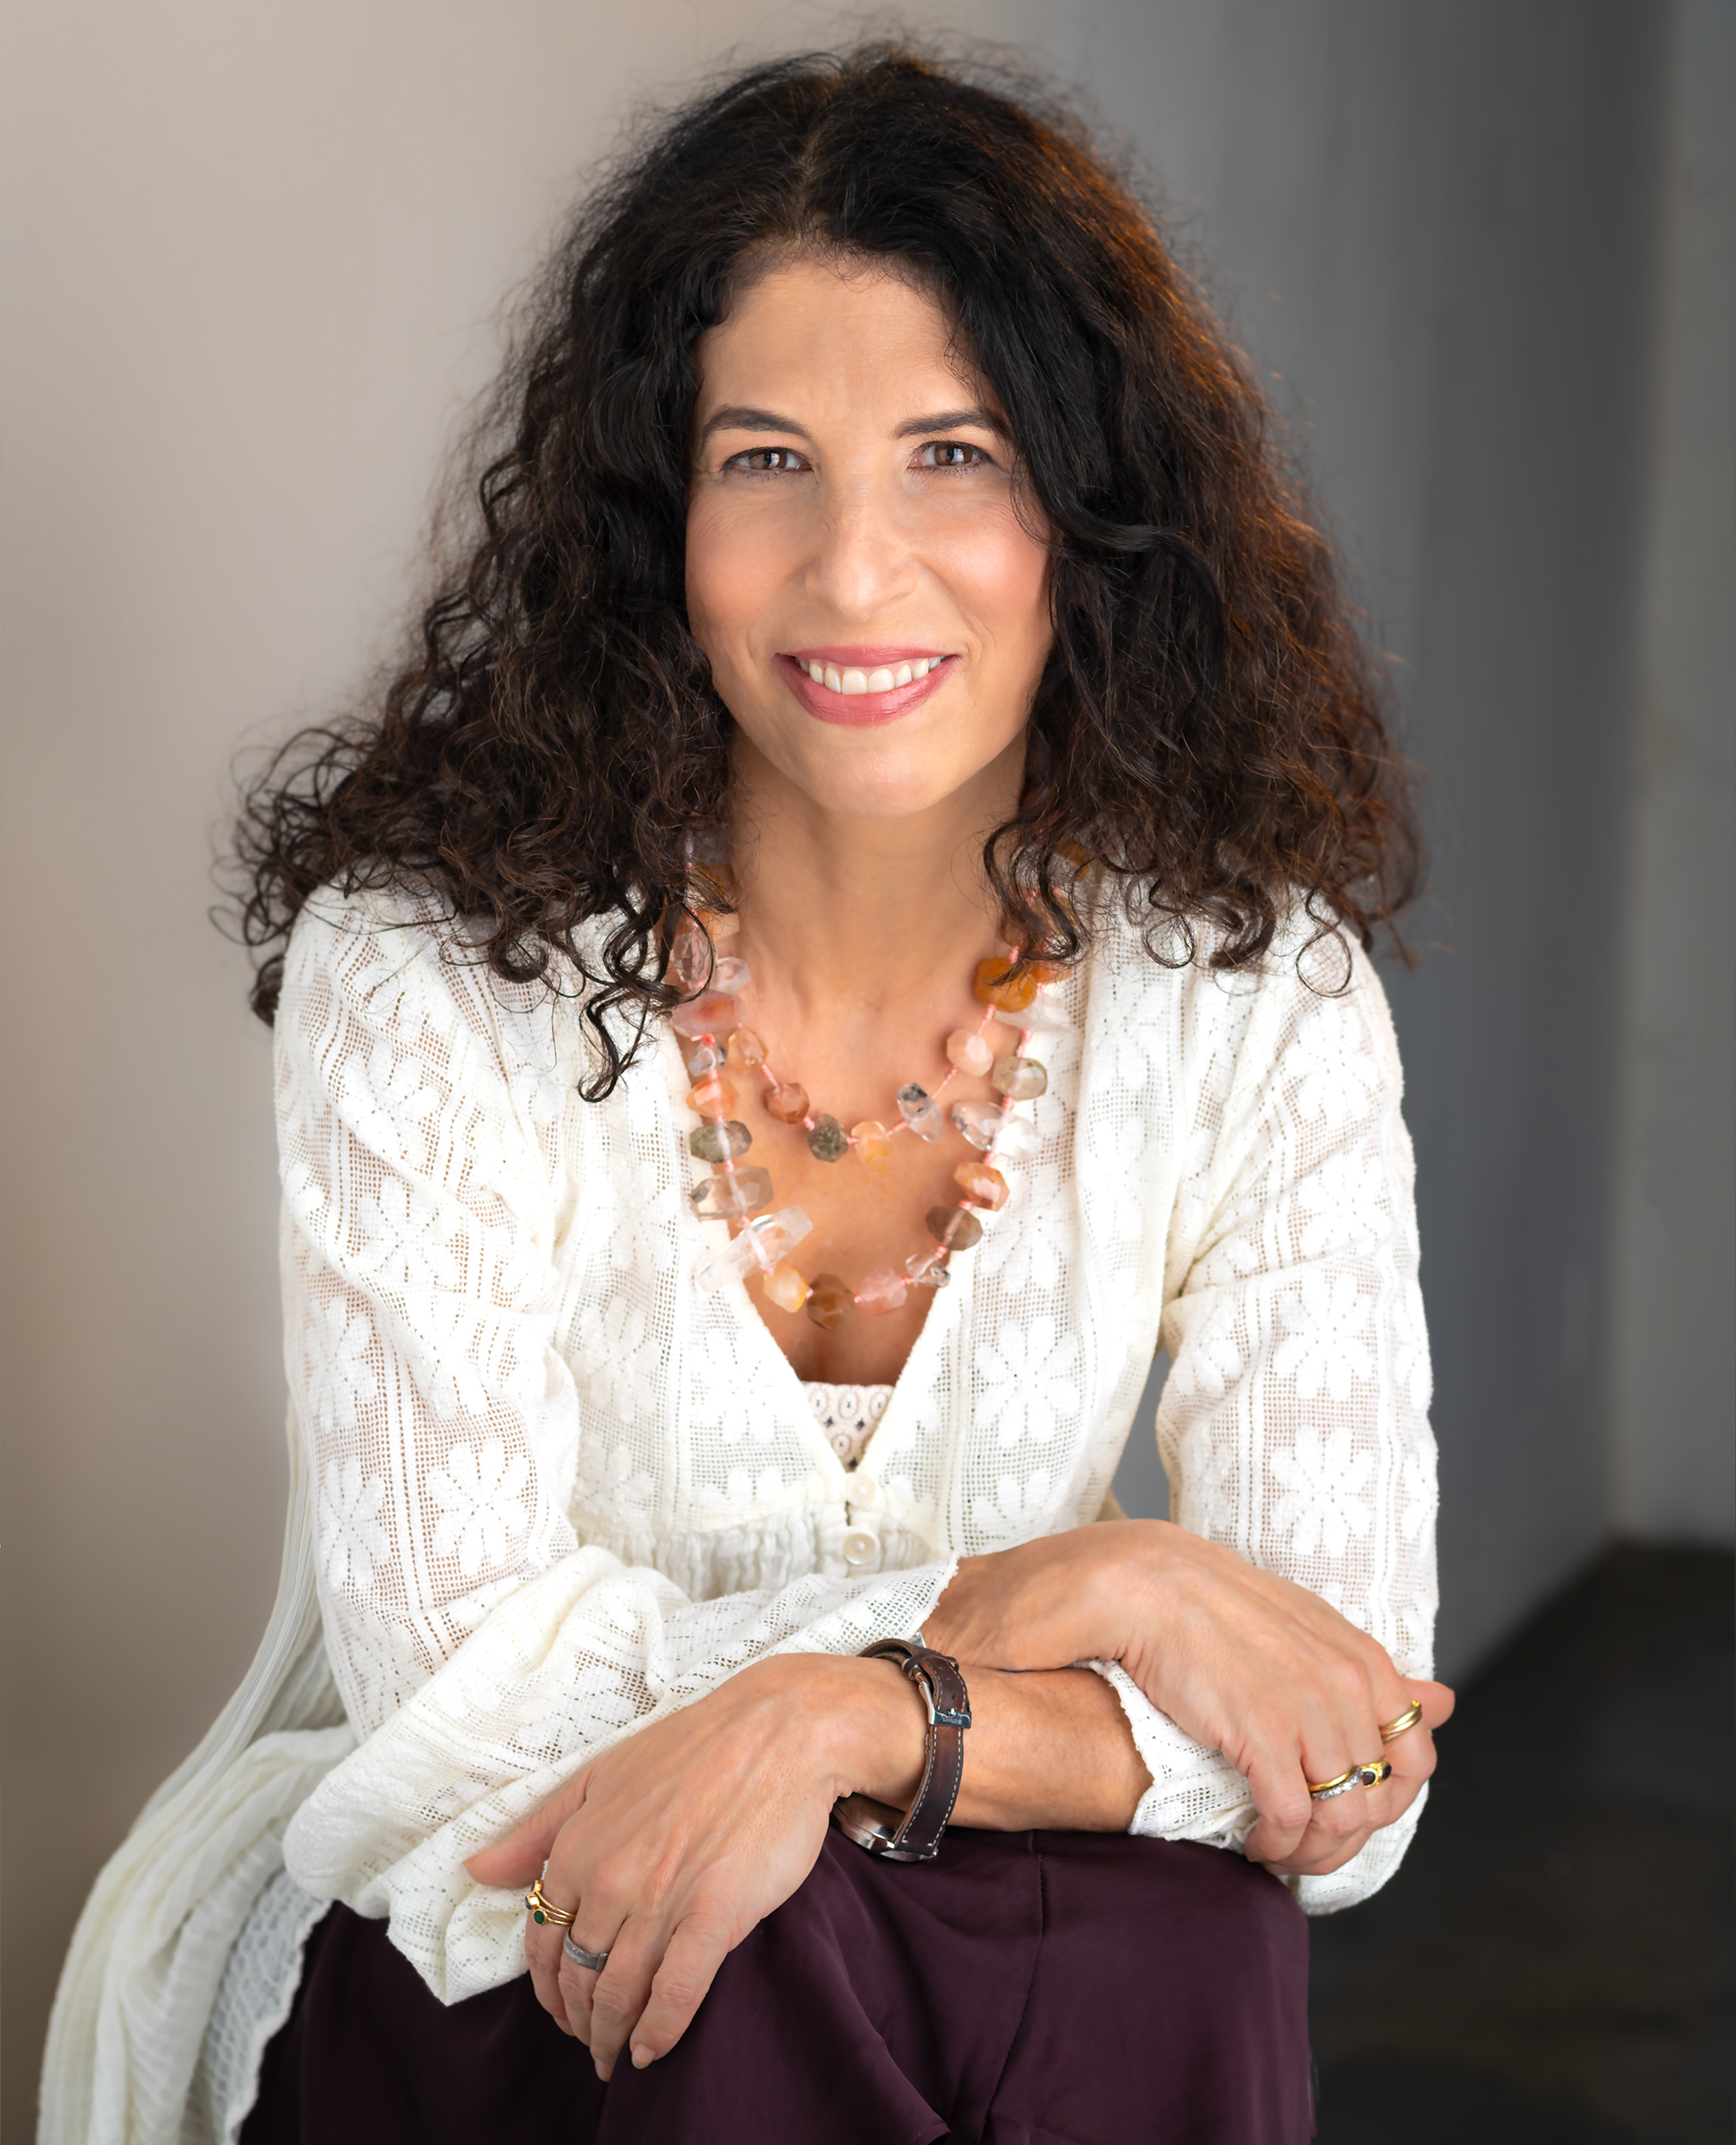 Denise Wiesner, Natural Fertility Expert and Author is leaning up against a chair wearing all white.